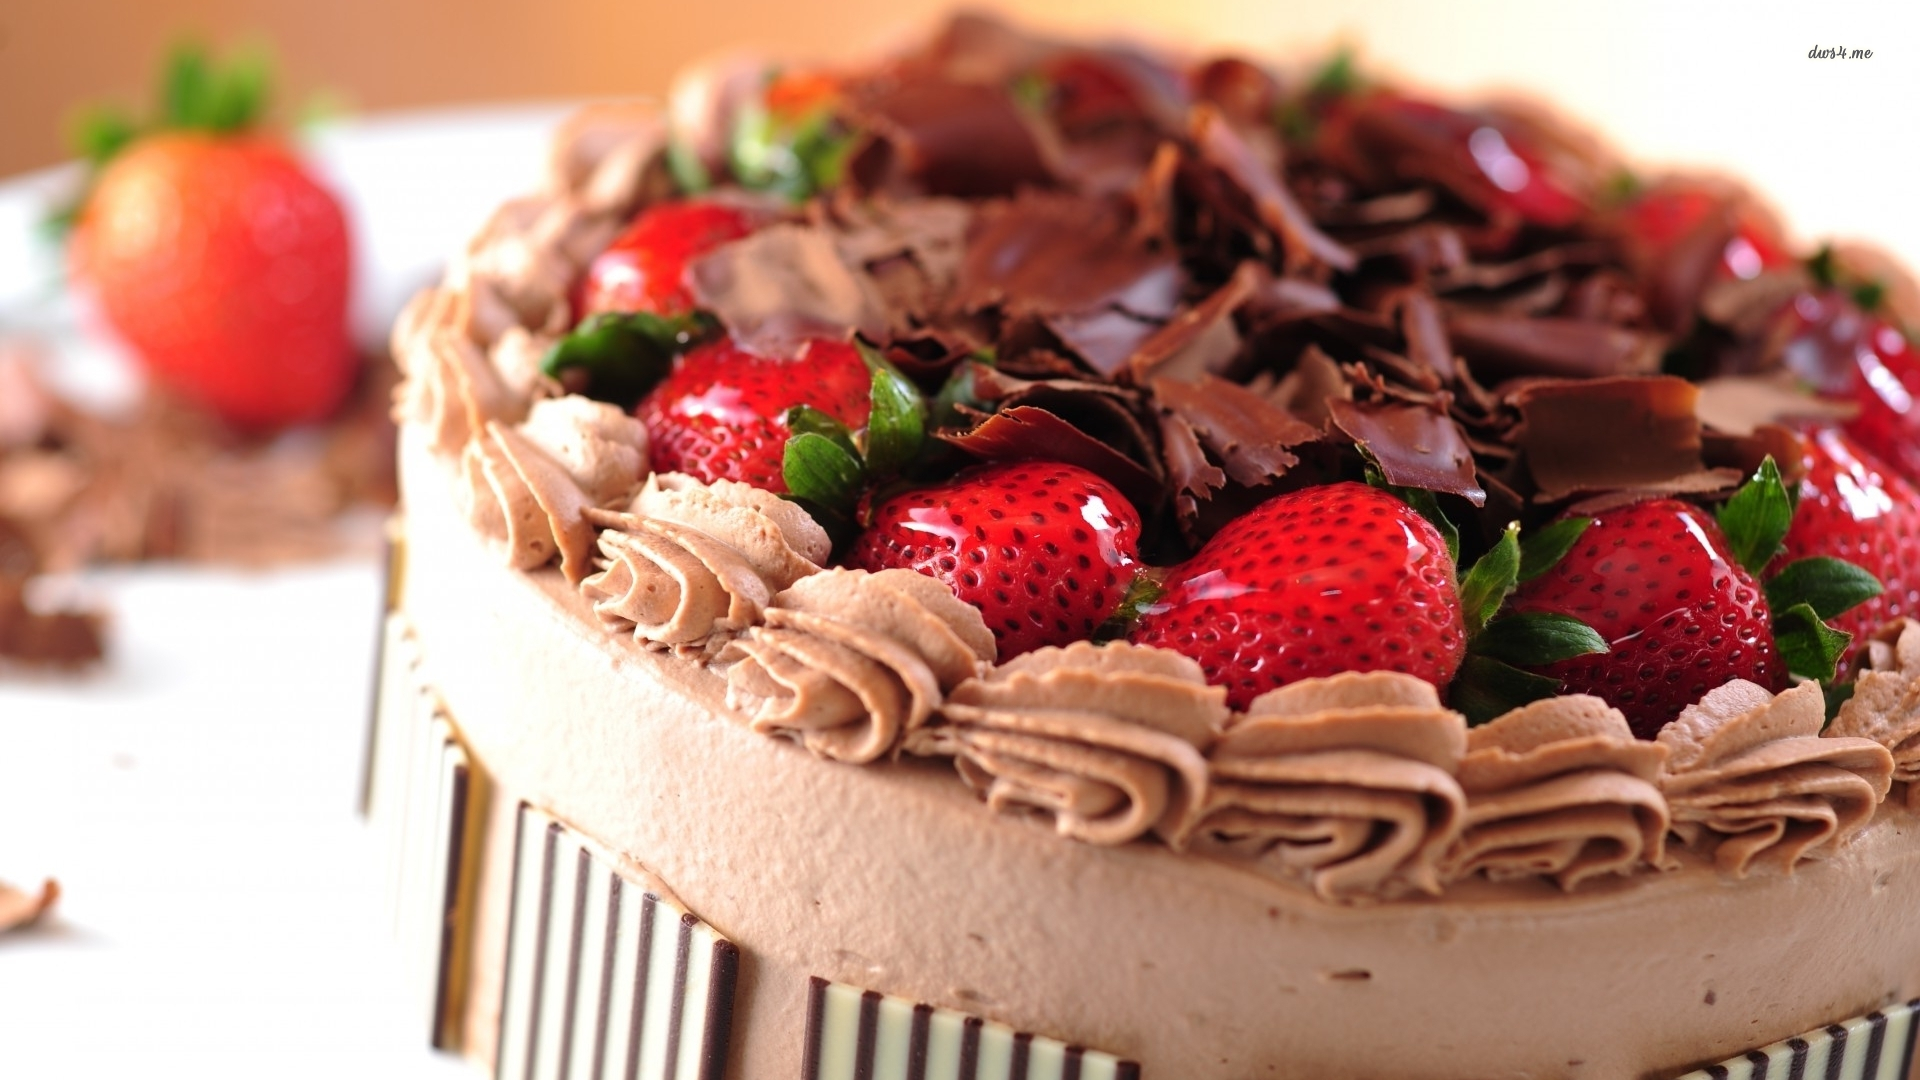 How Good To Order A Cake Through Online Cake Shop?